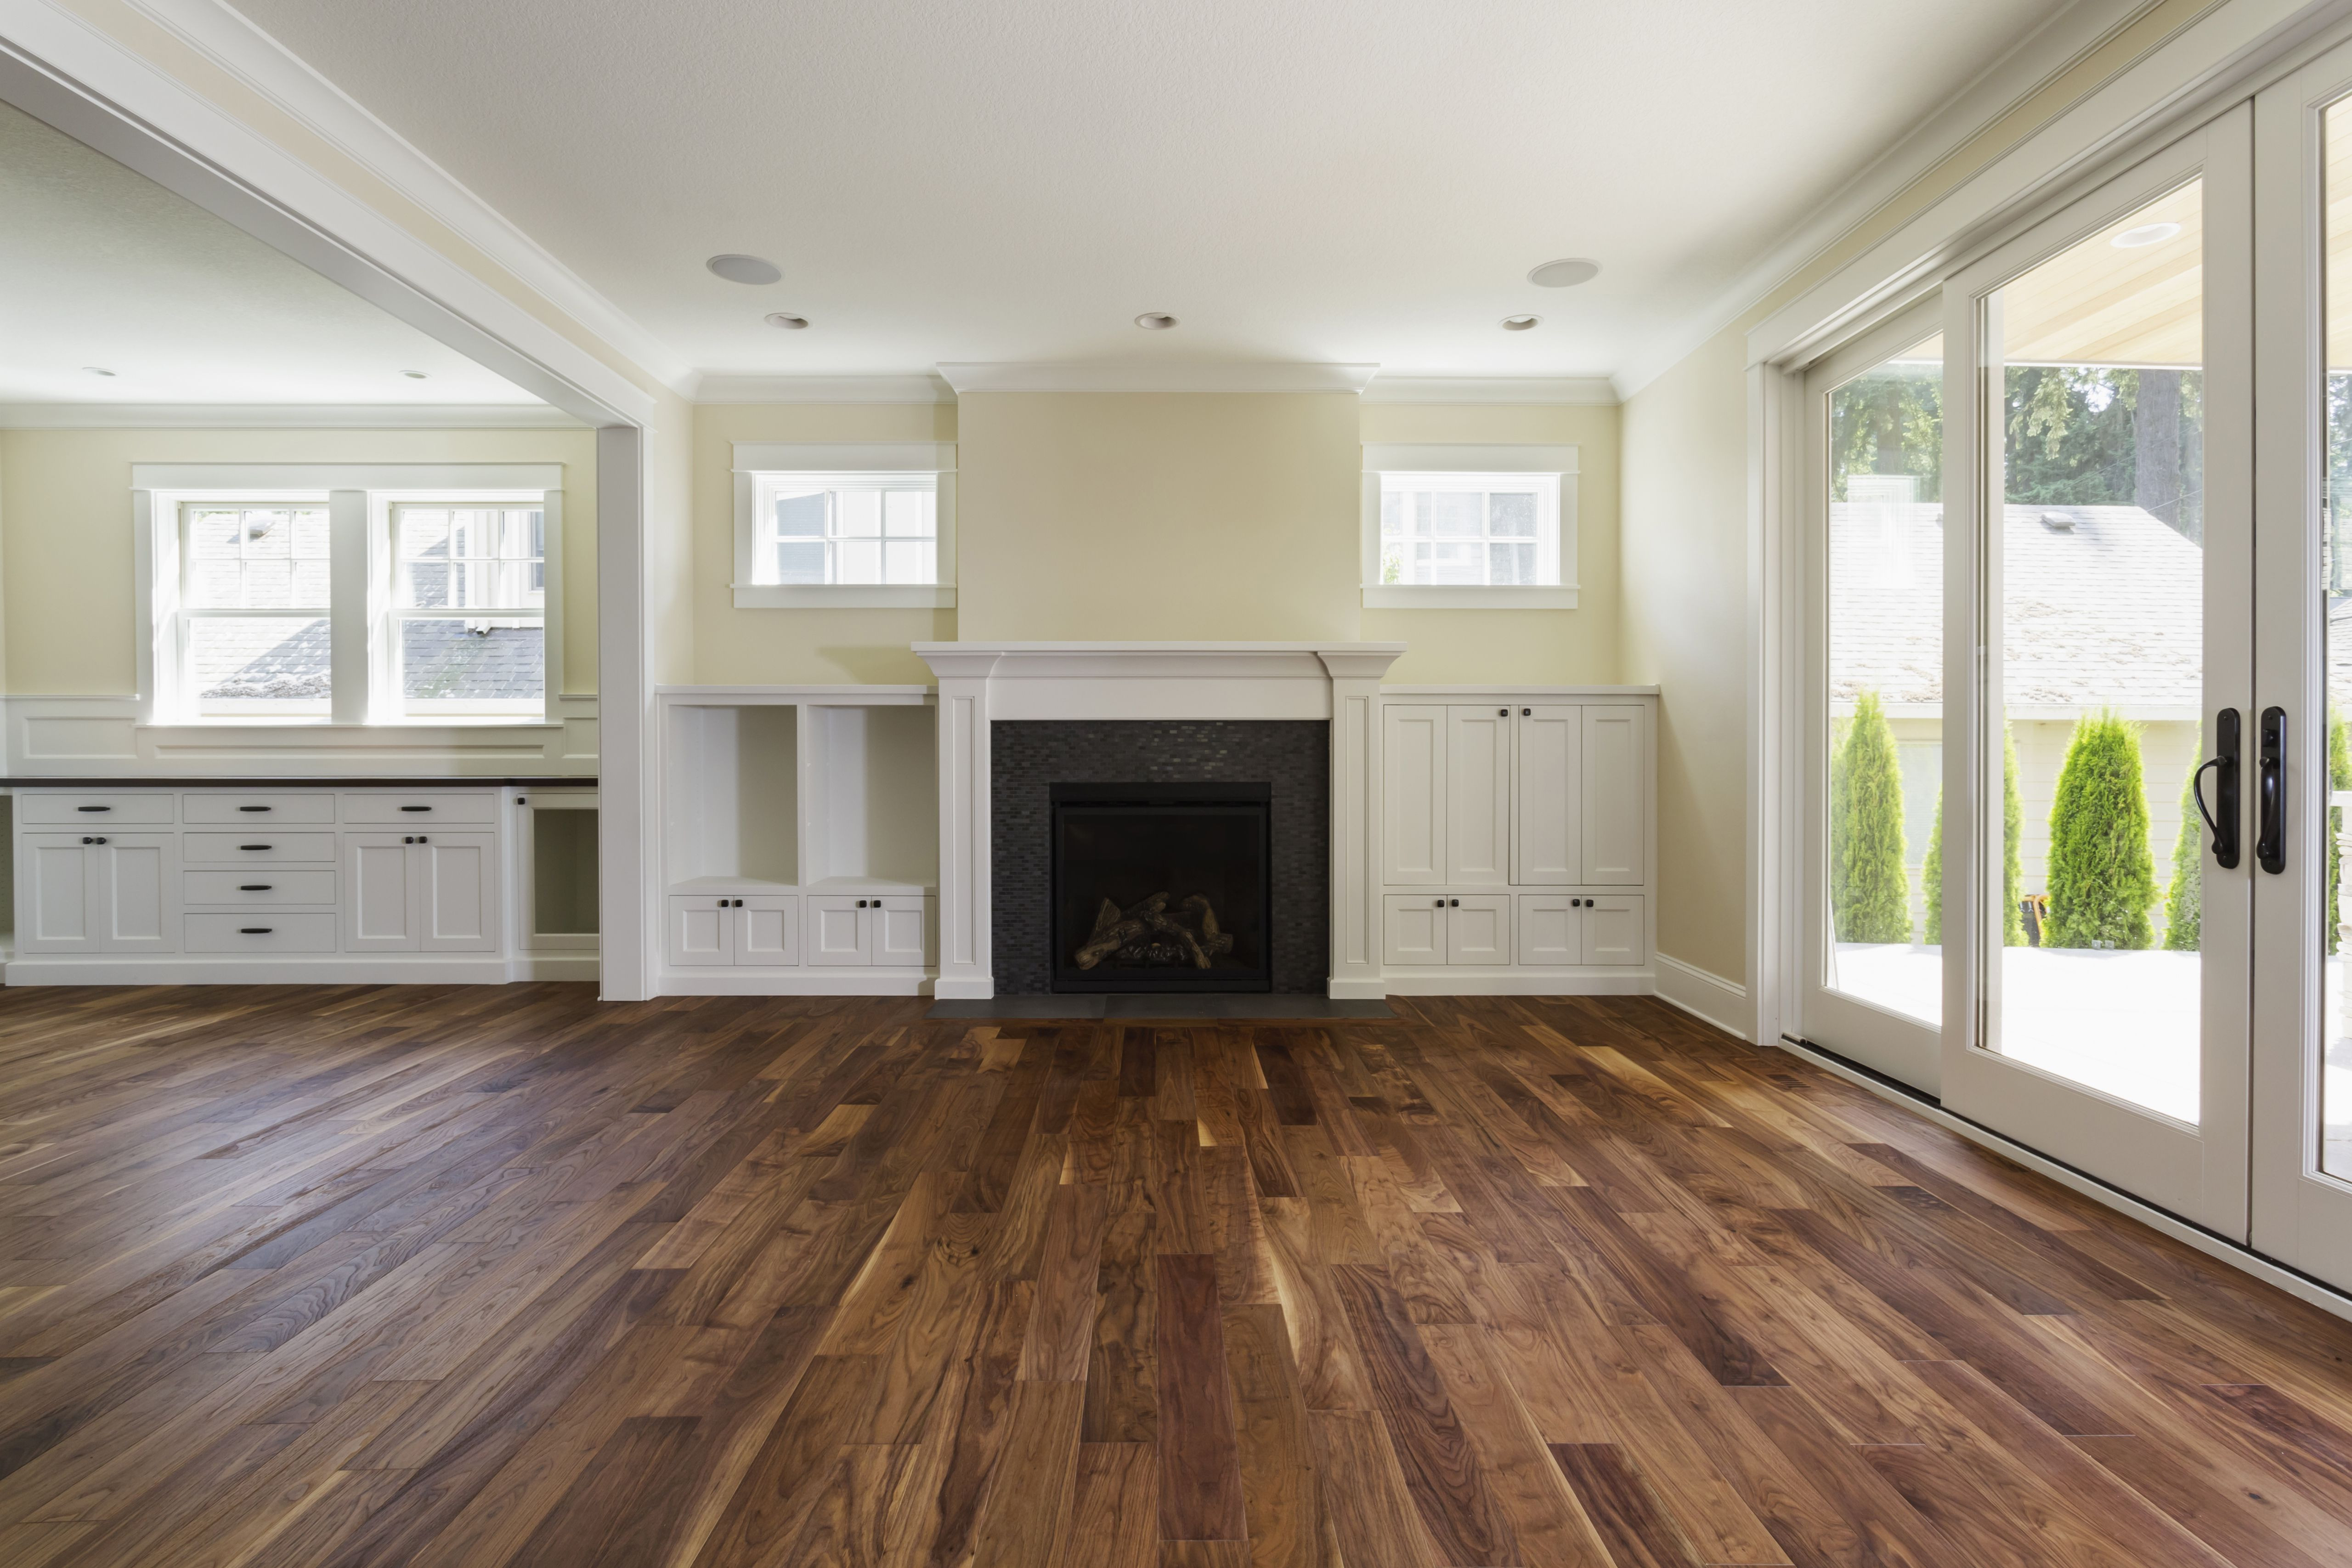 how much does oak hardwood flooring cost of the pros and cons of prefinished hardwood flooring intended for fireplace and built in shelves in living room 482143011 57bef8e33df78cc16e035397